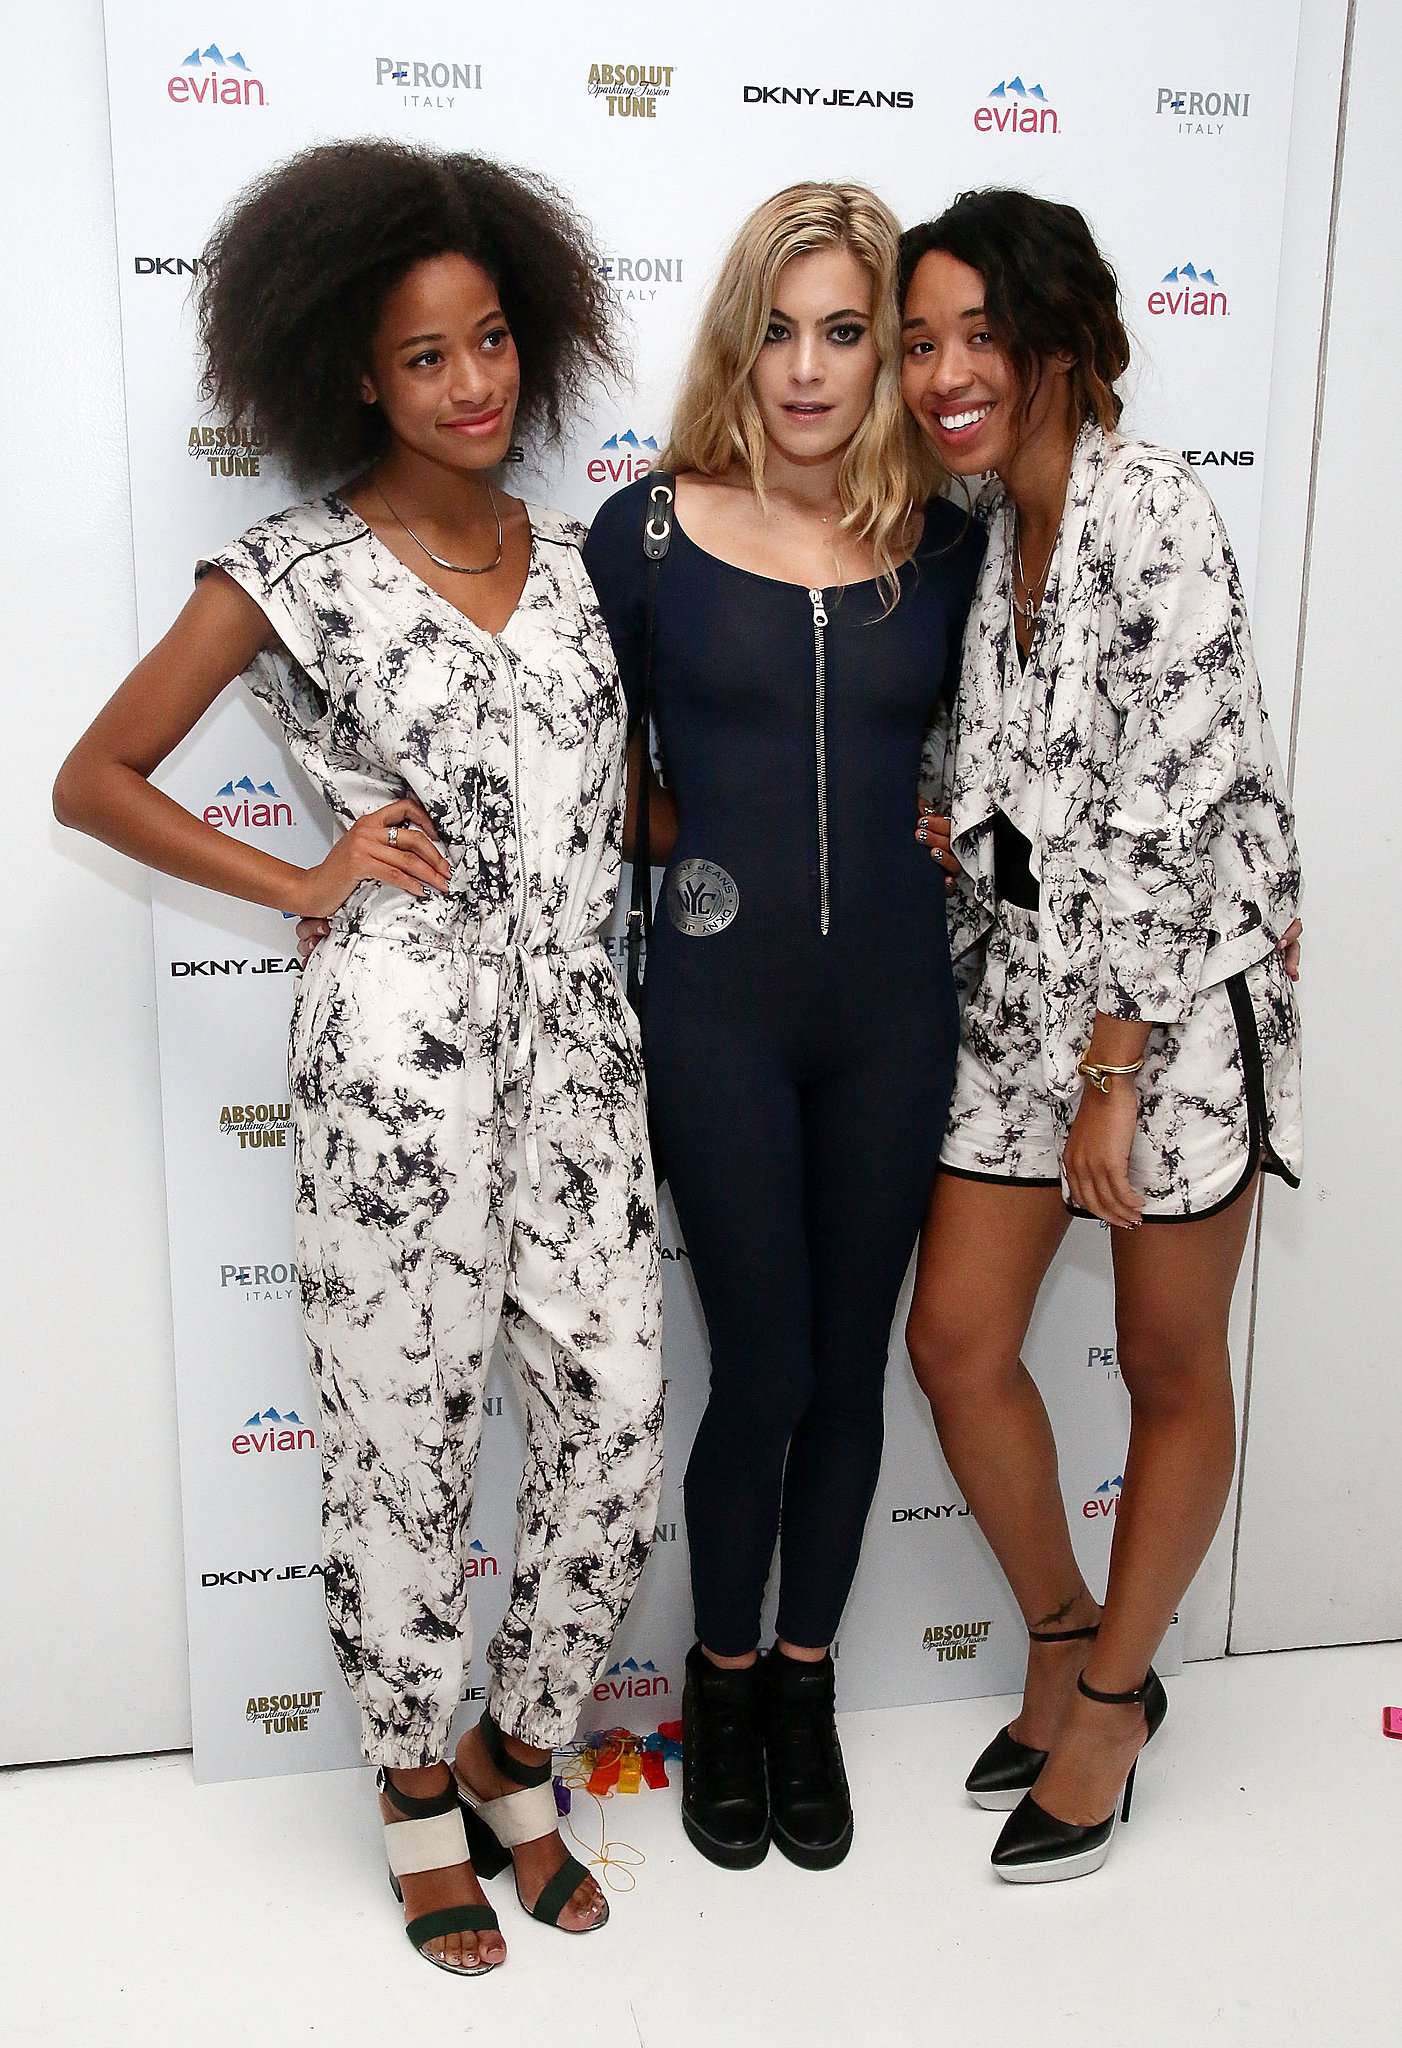 DKNY Jeans celebrated Chelsea Leyland's birthday where friends including Kilo Kish and Kitty Kash were on hand to celebrate.